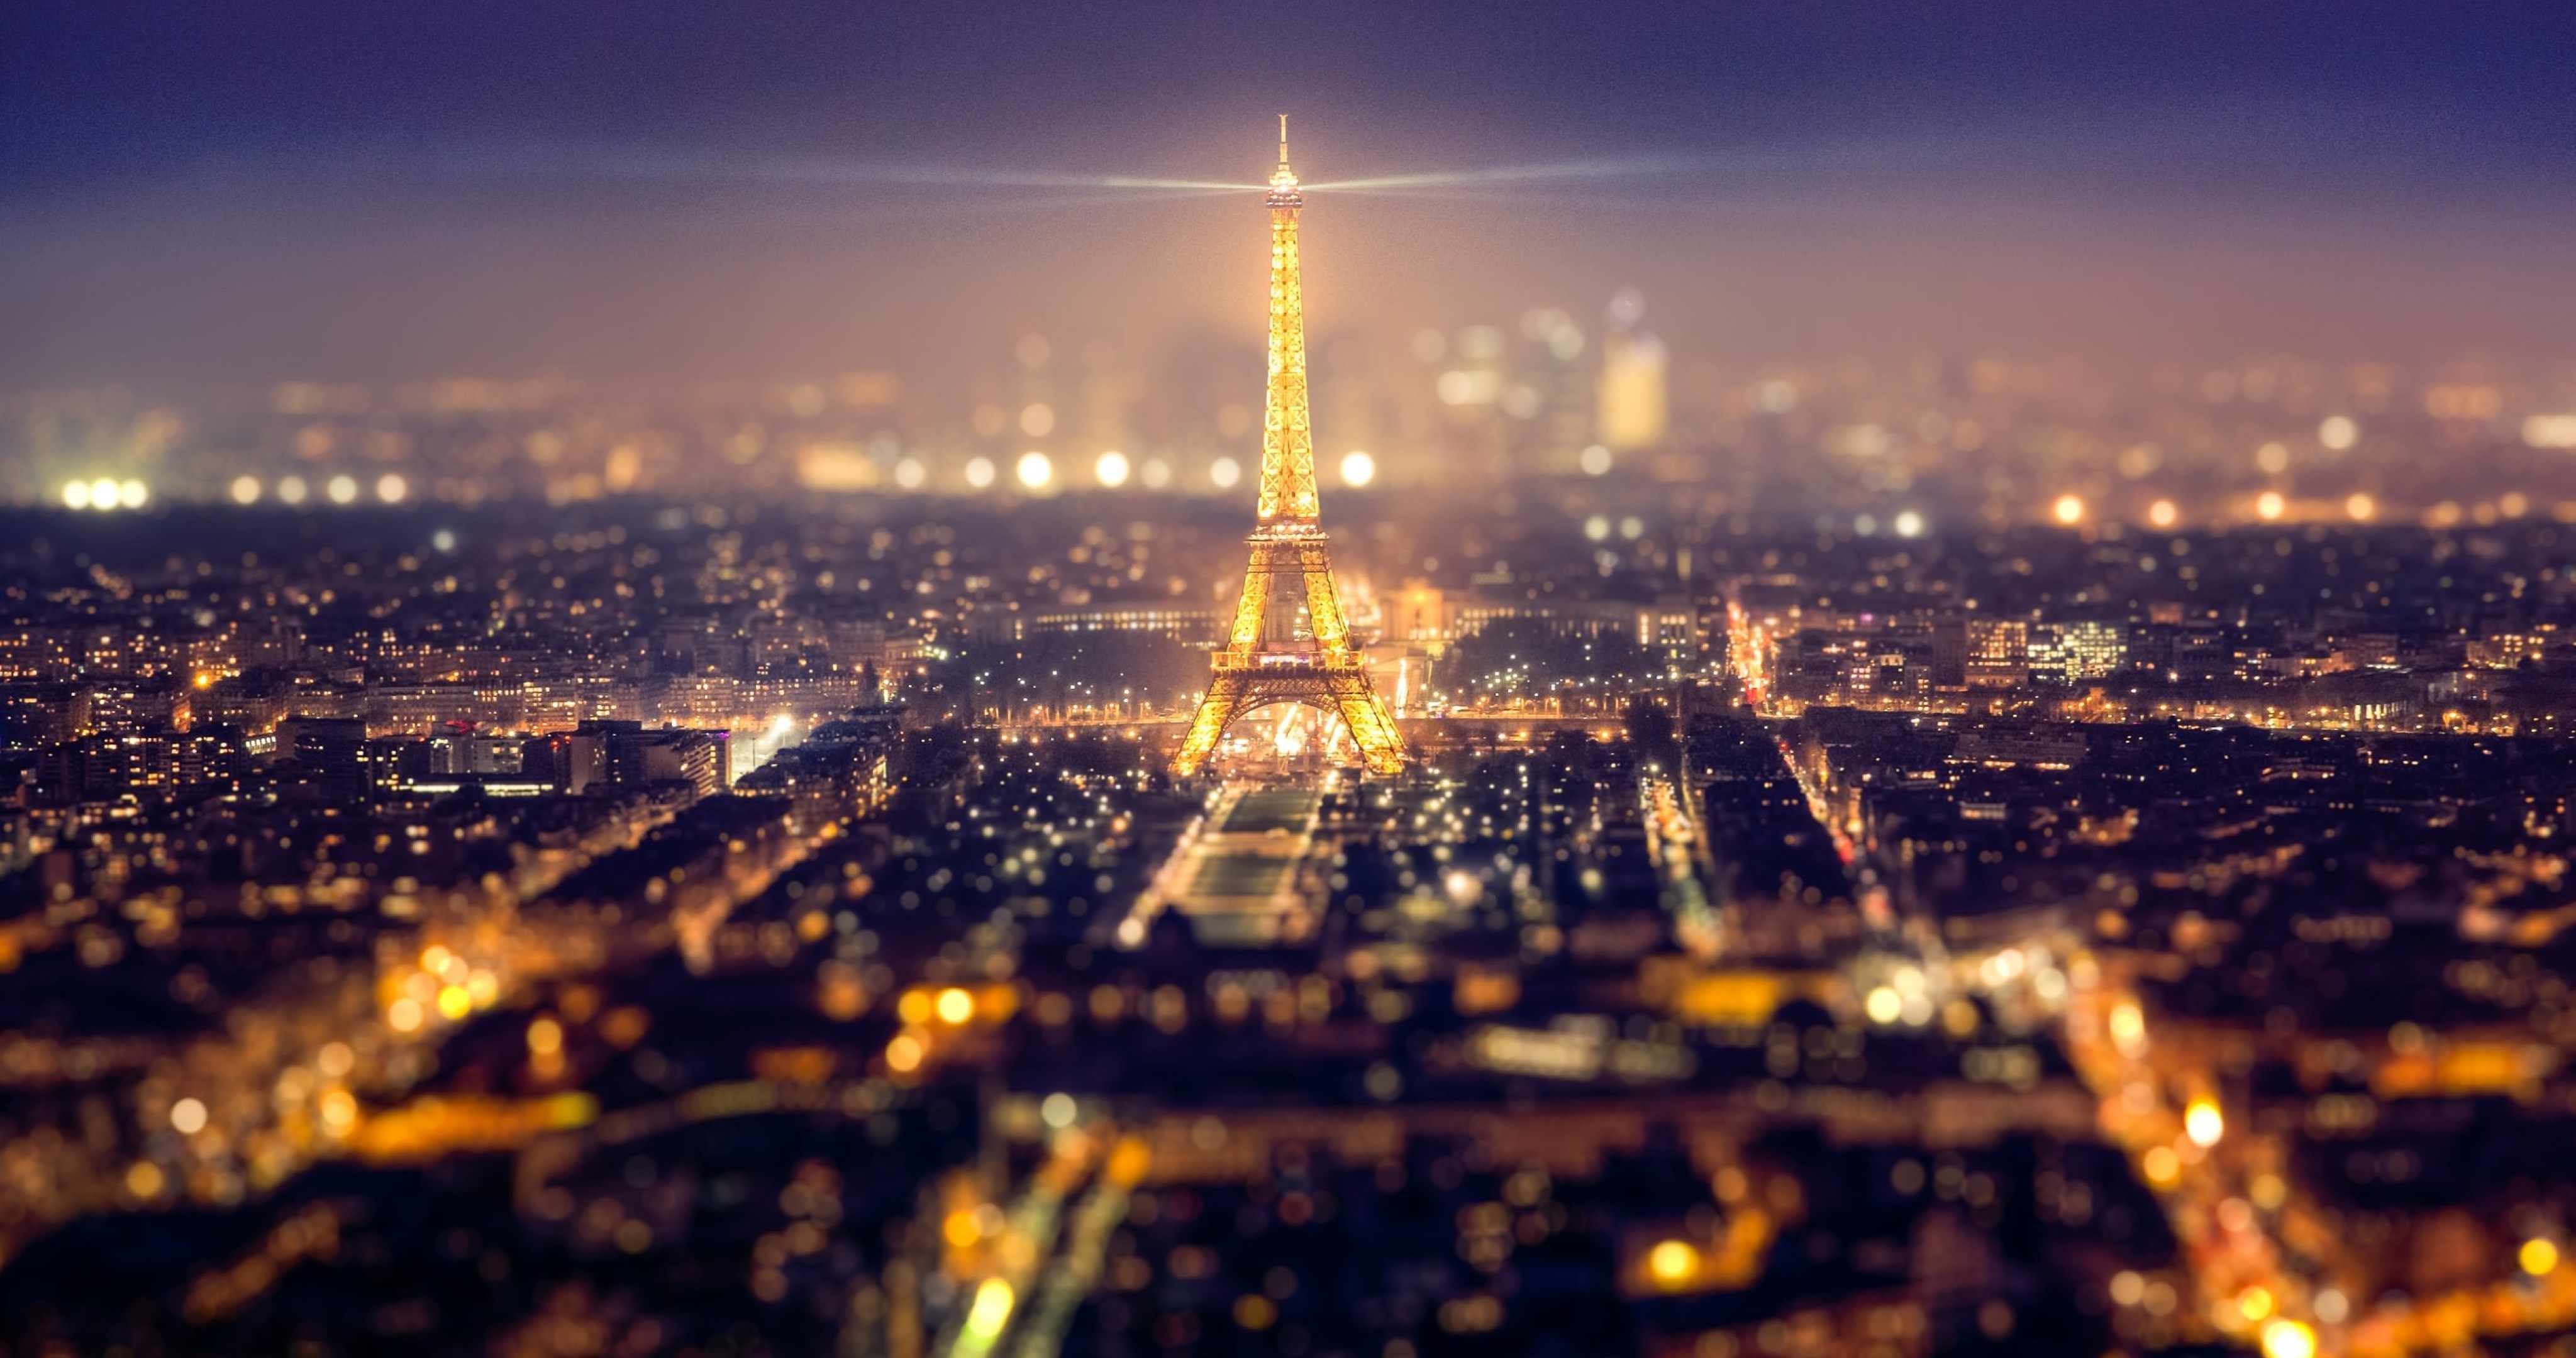 Must see Wallpaper High Quality Paris - 72801-paris-eiffel-tower-night-4k-ultra-hd-wallpaper__cityscapes  You Should Have_20487.jpg